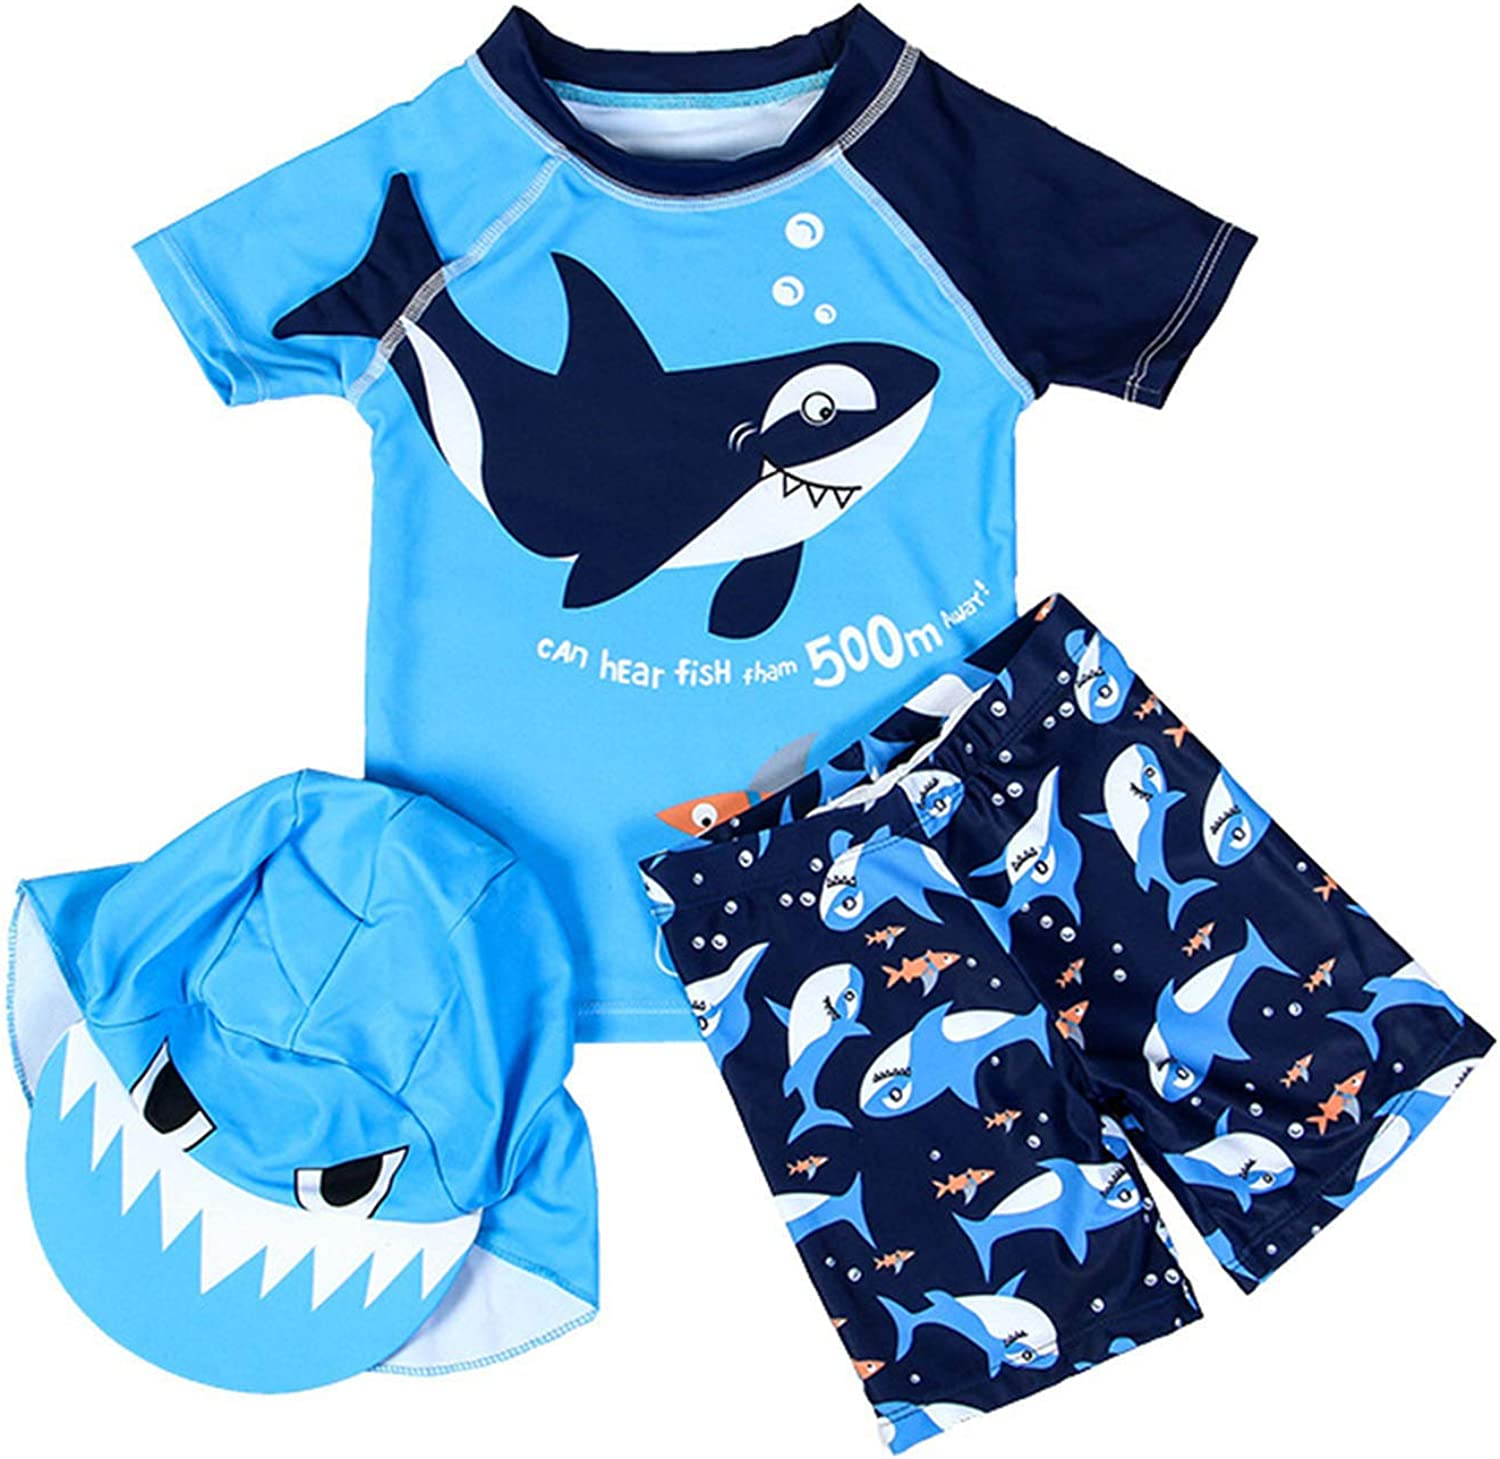 Baby Toddler Boys 3-Pieces Swimsuit Suits Bathing online Outlet sale feature shopping Swi Guard Rash